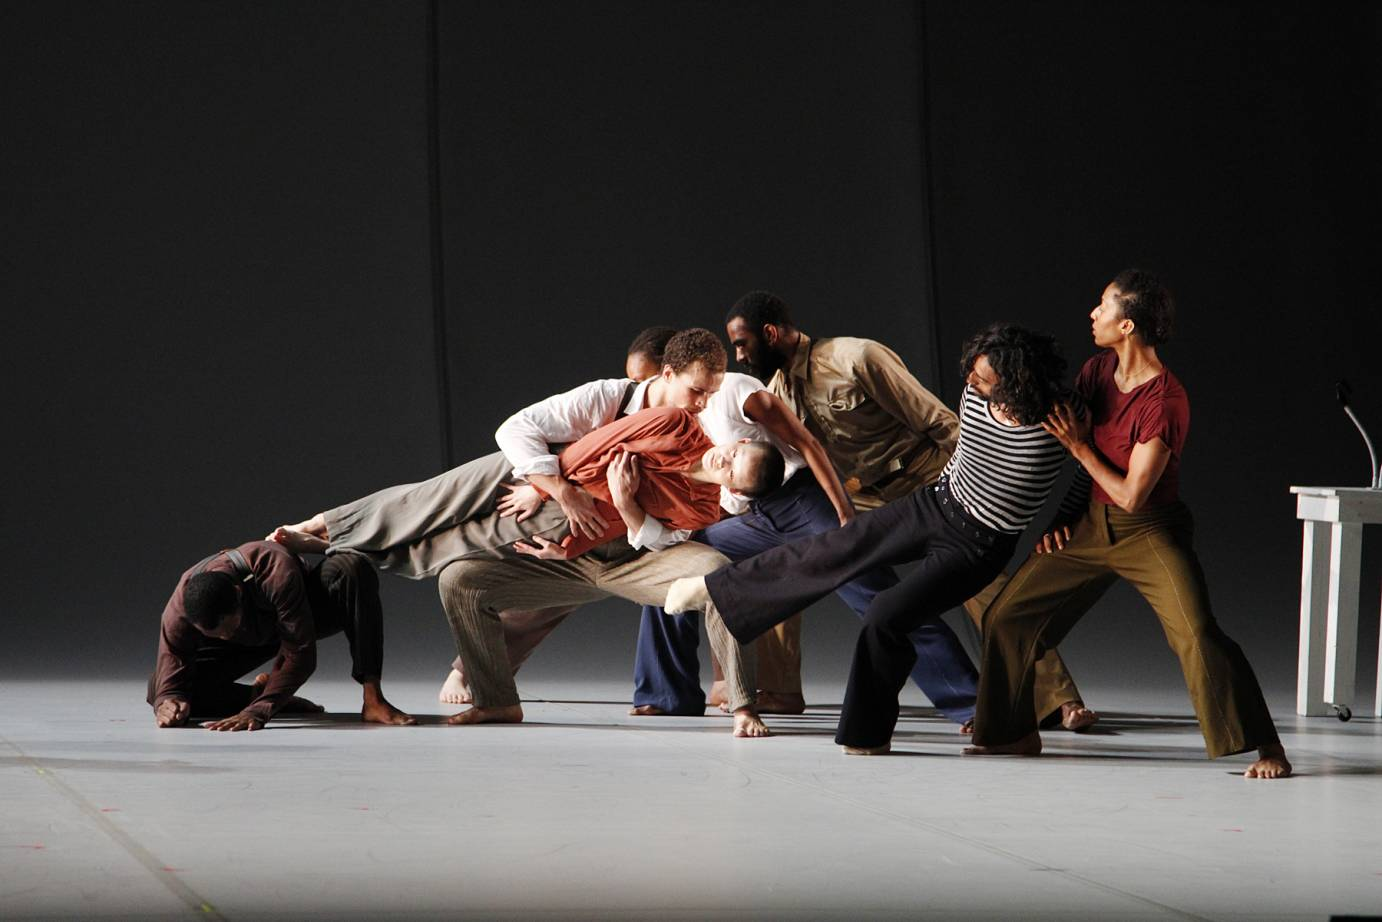 Dancers form a cascading chain with their bodies. They lean on one another. One dancer is held horizontally by the group.